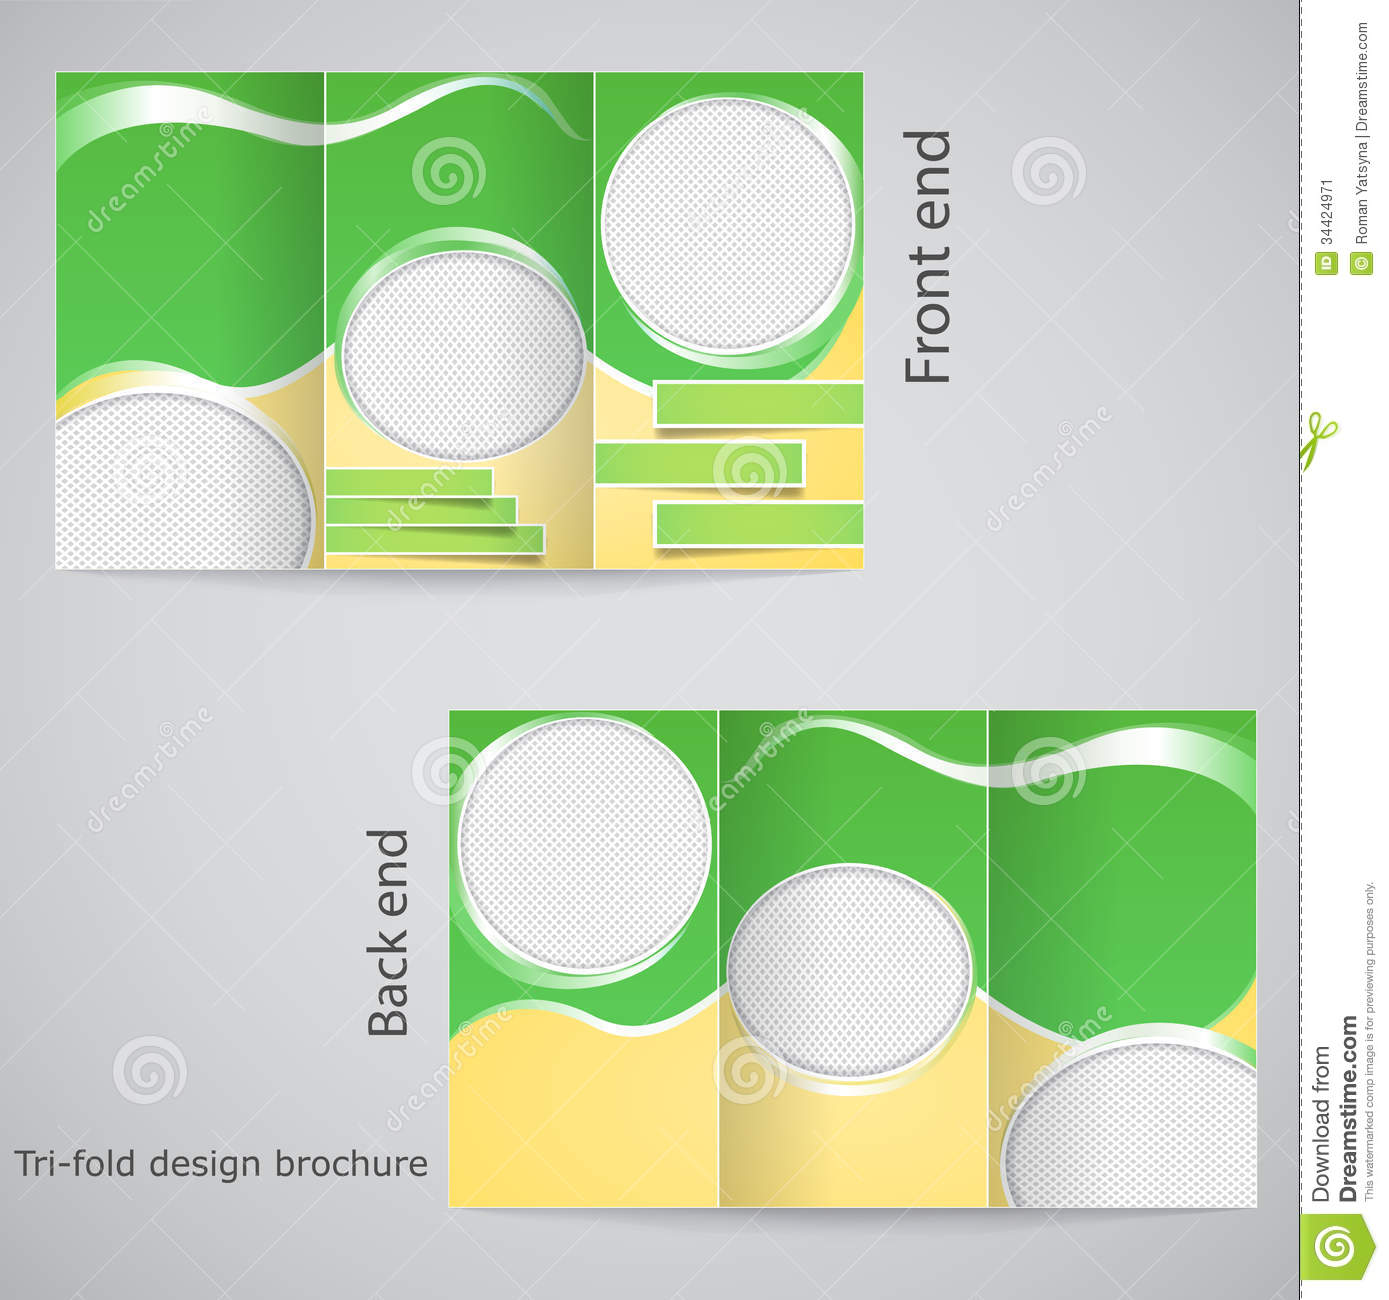 Tri fold brochure design stock vector illustration of for Free template brochure design